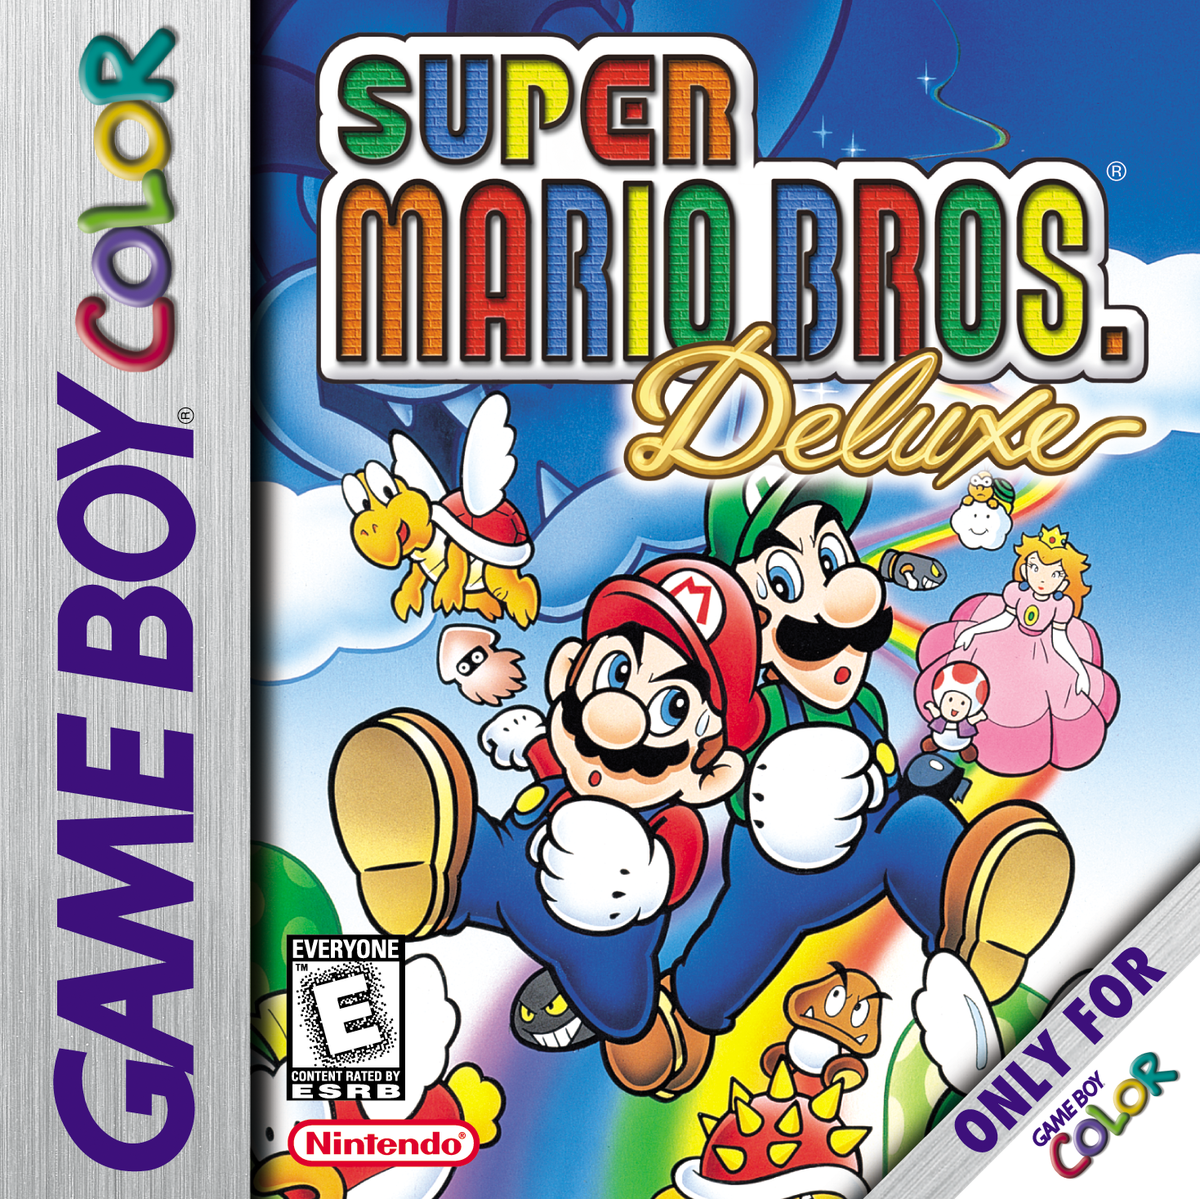 Super Mario Bros Deluxe Super Mario Wiki The Mario Encyclopedia